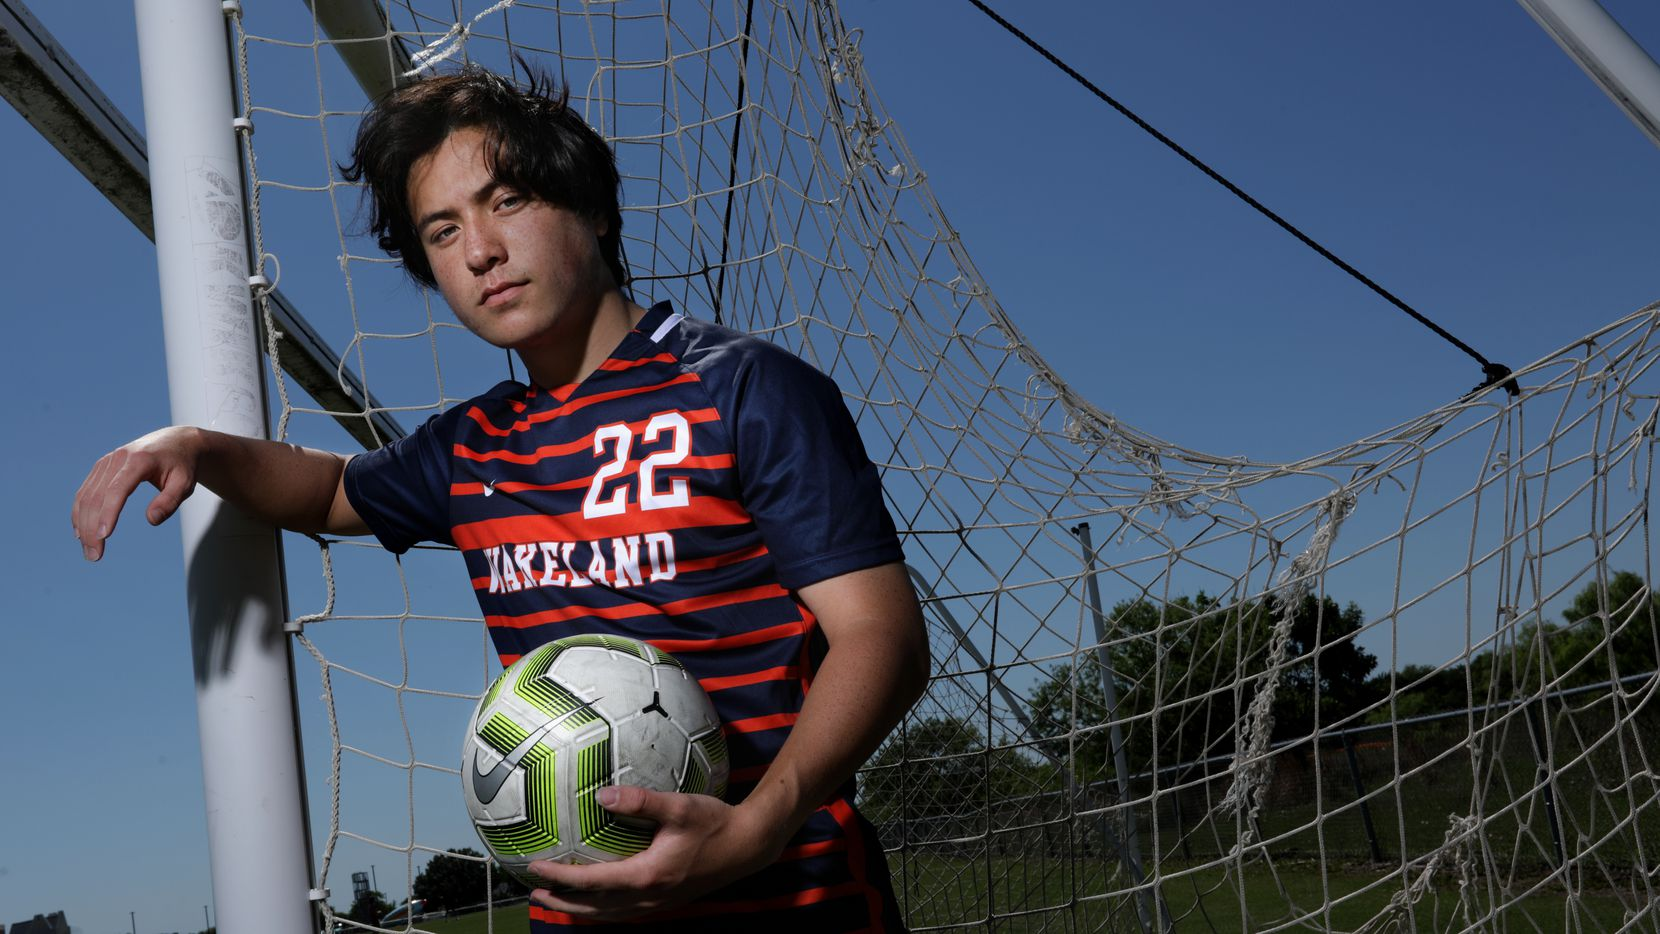 Brennan Bezdek poses for a photograph at Frisco Wakeland High School in Frisco, TX, on May 6, 2021.